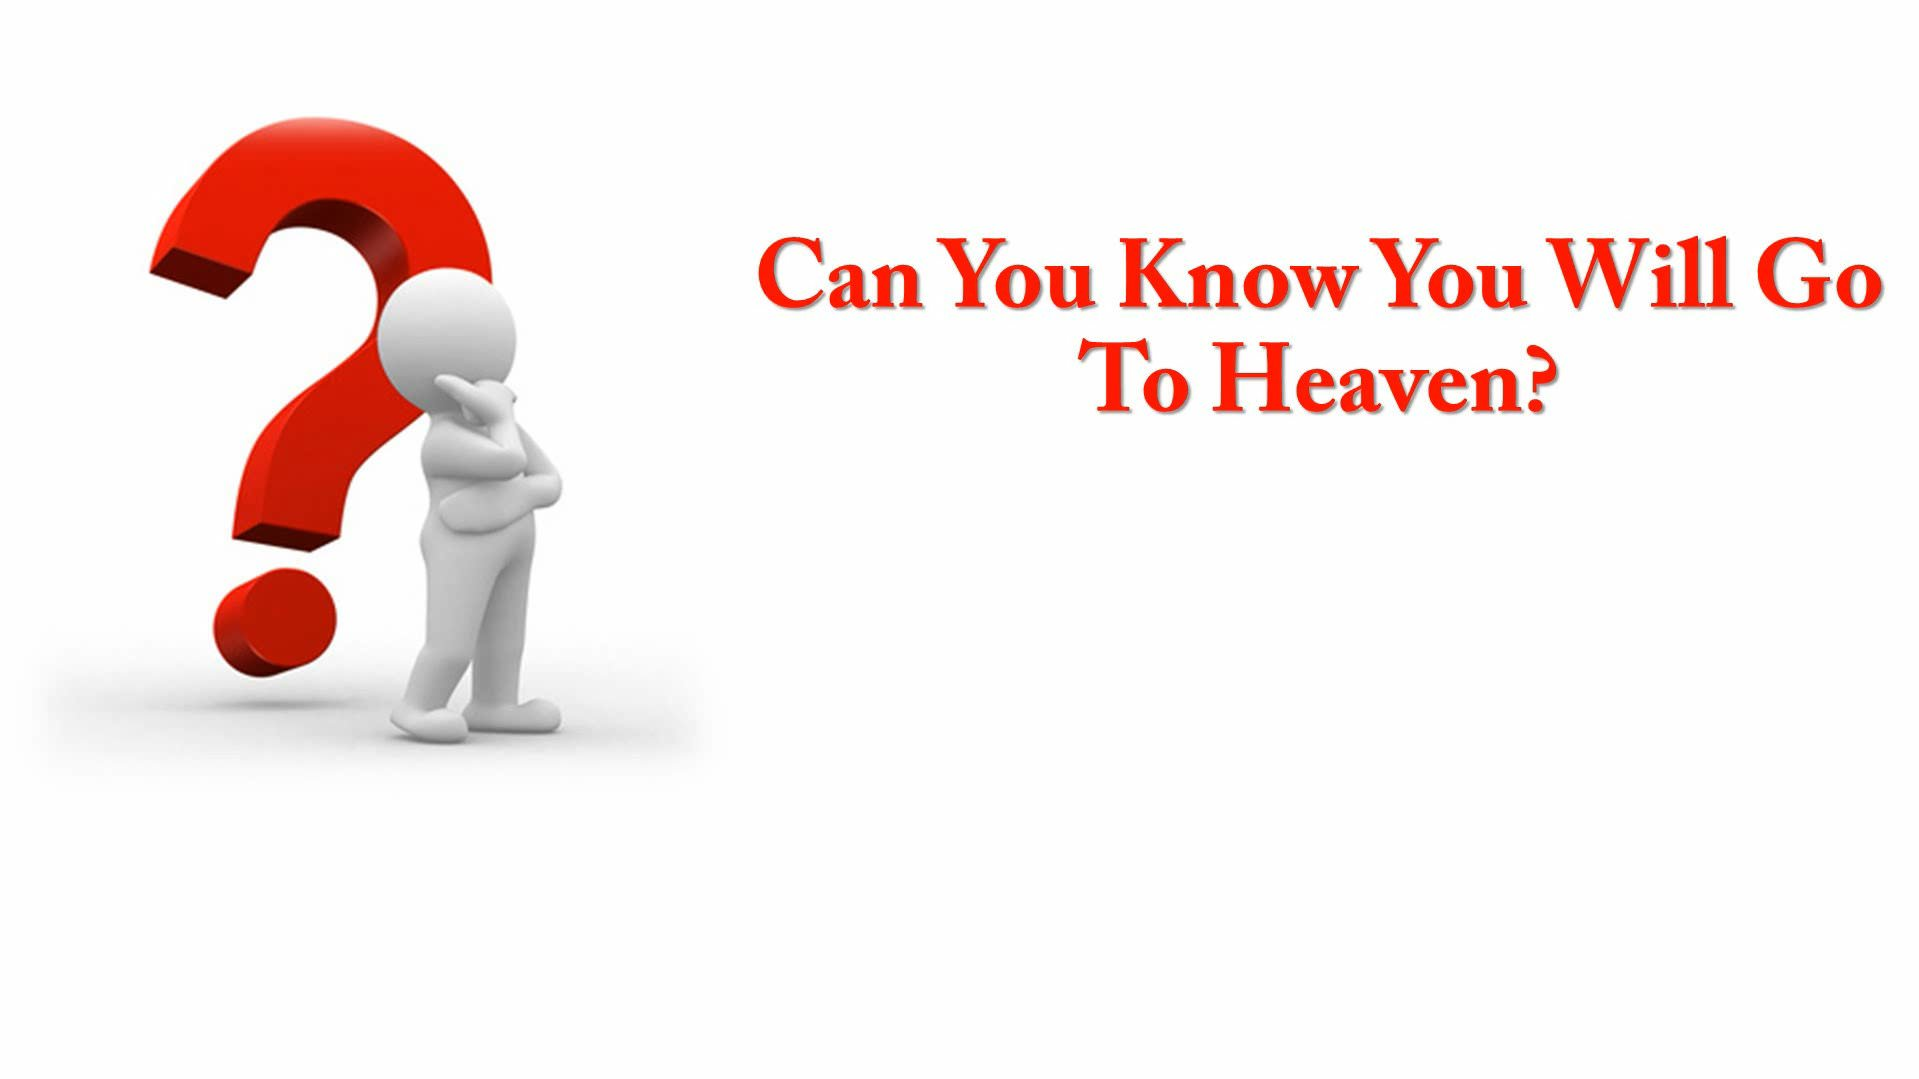 Can You Know You Will Go To Heaven?